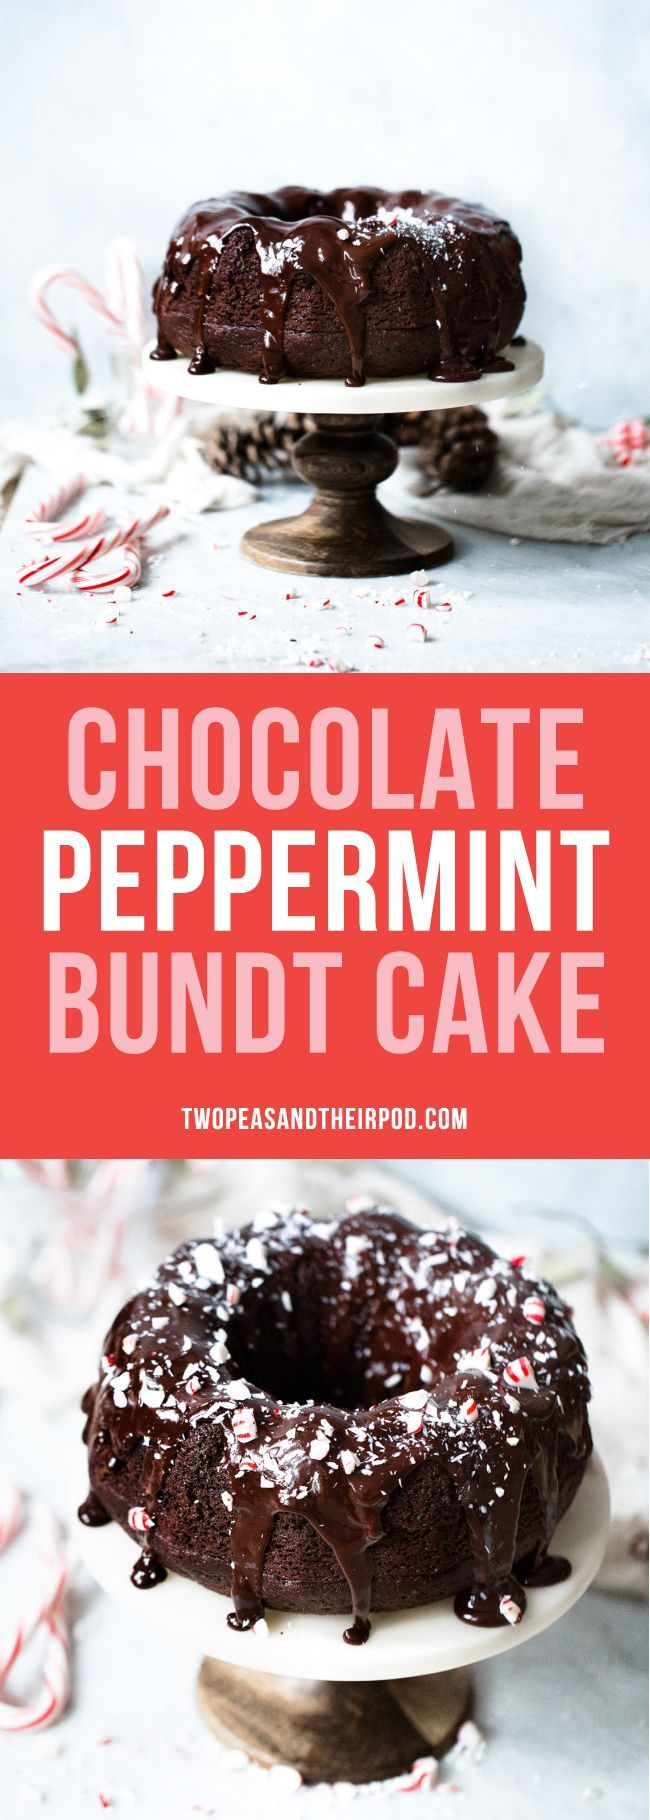 Chocolate Peppermint Bundt Cake is the perfect dessert for Christmas and the holidays. My family loves this recipe, and I know that yours will too!